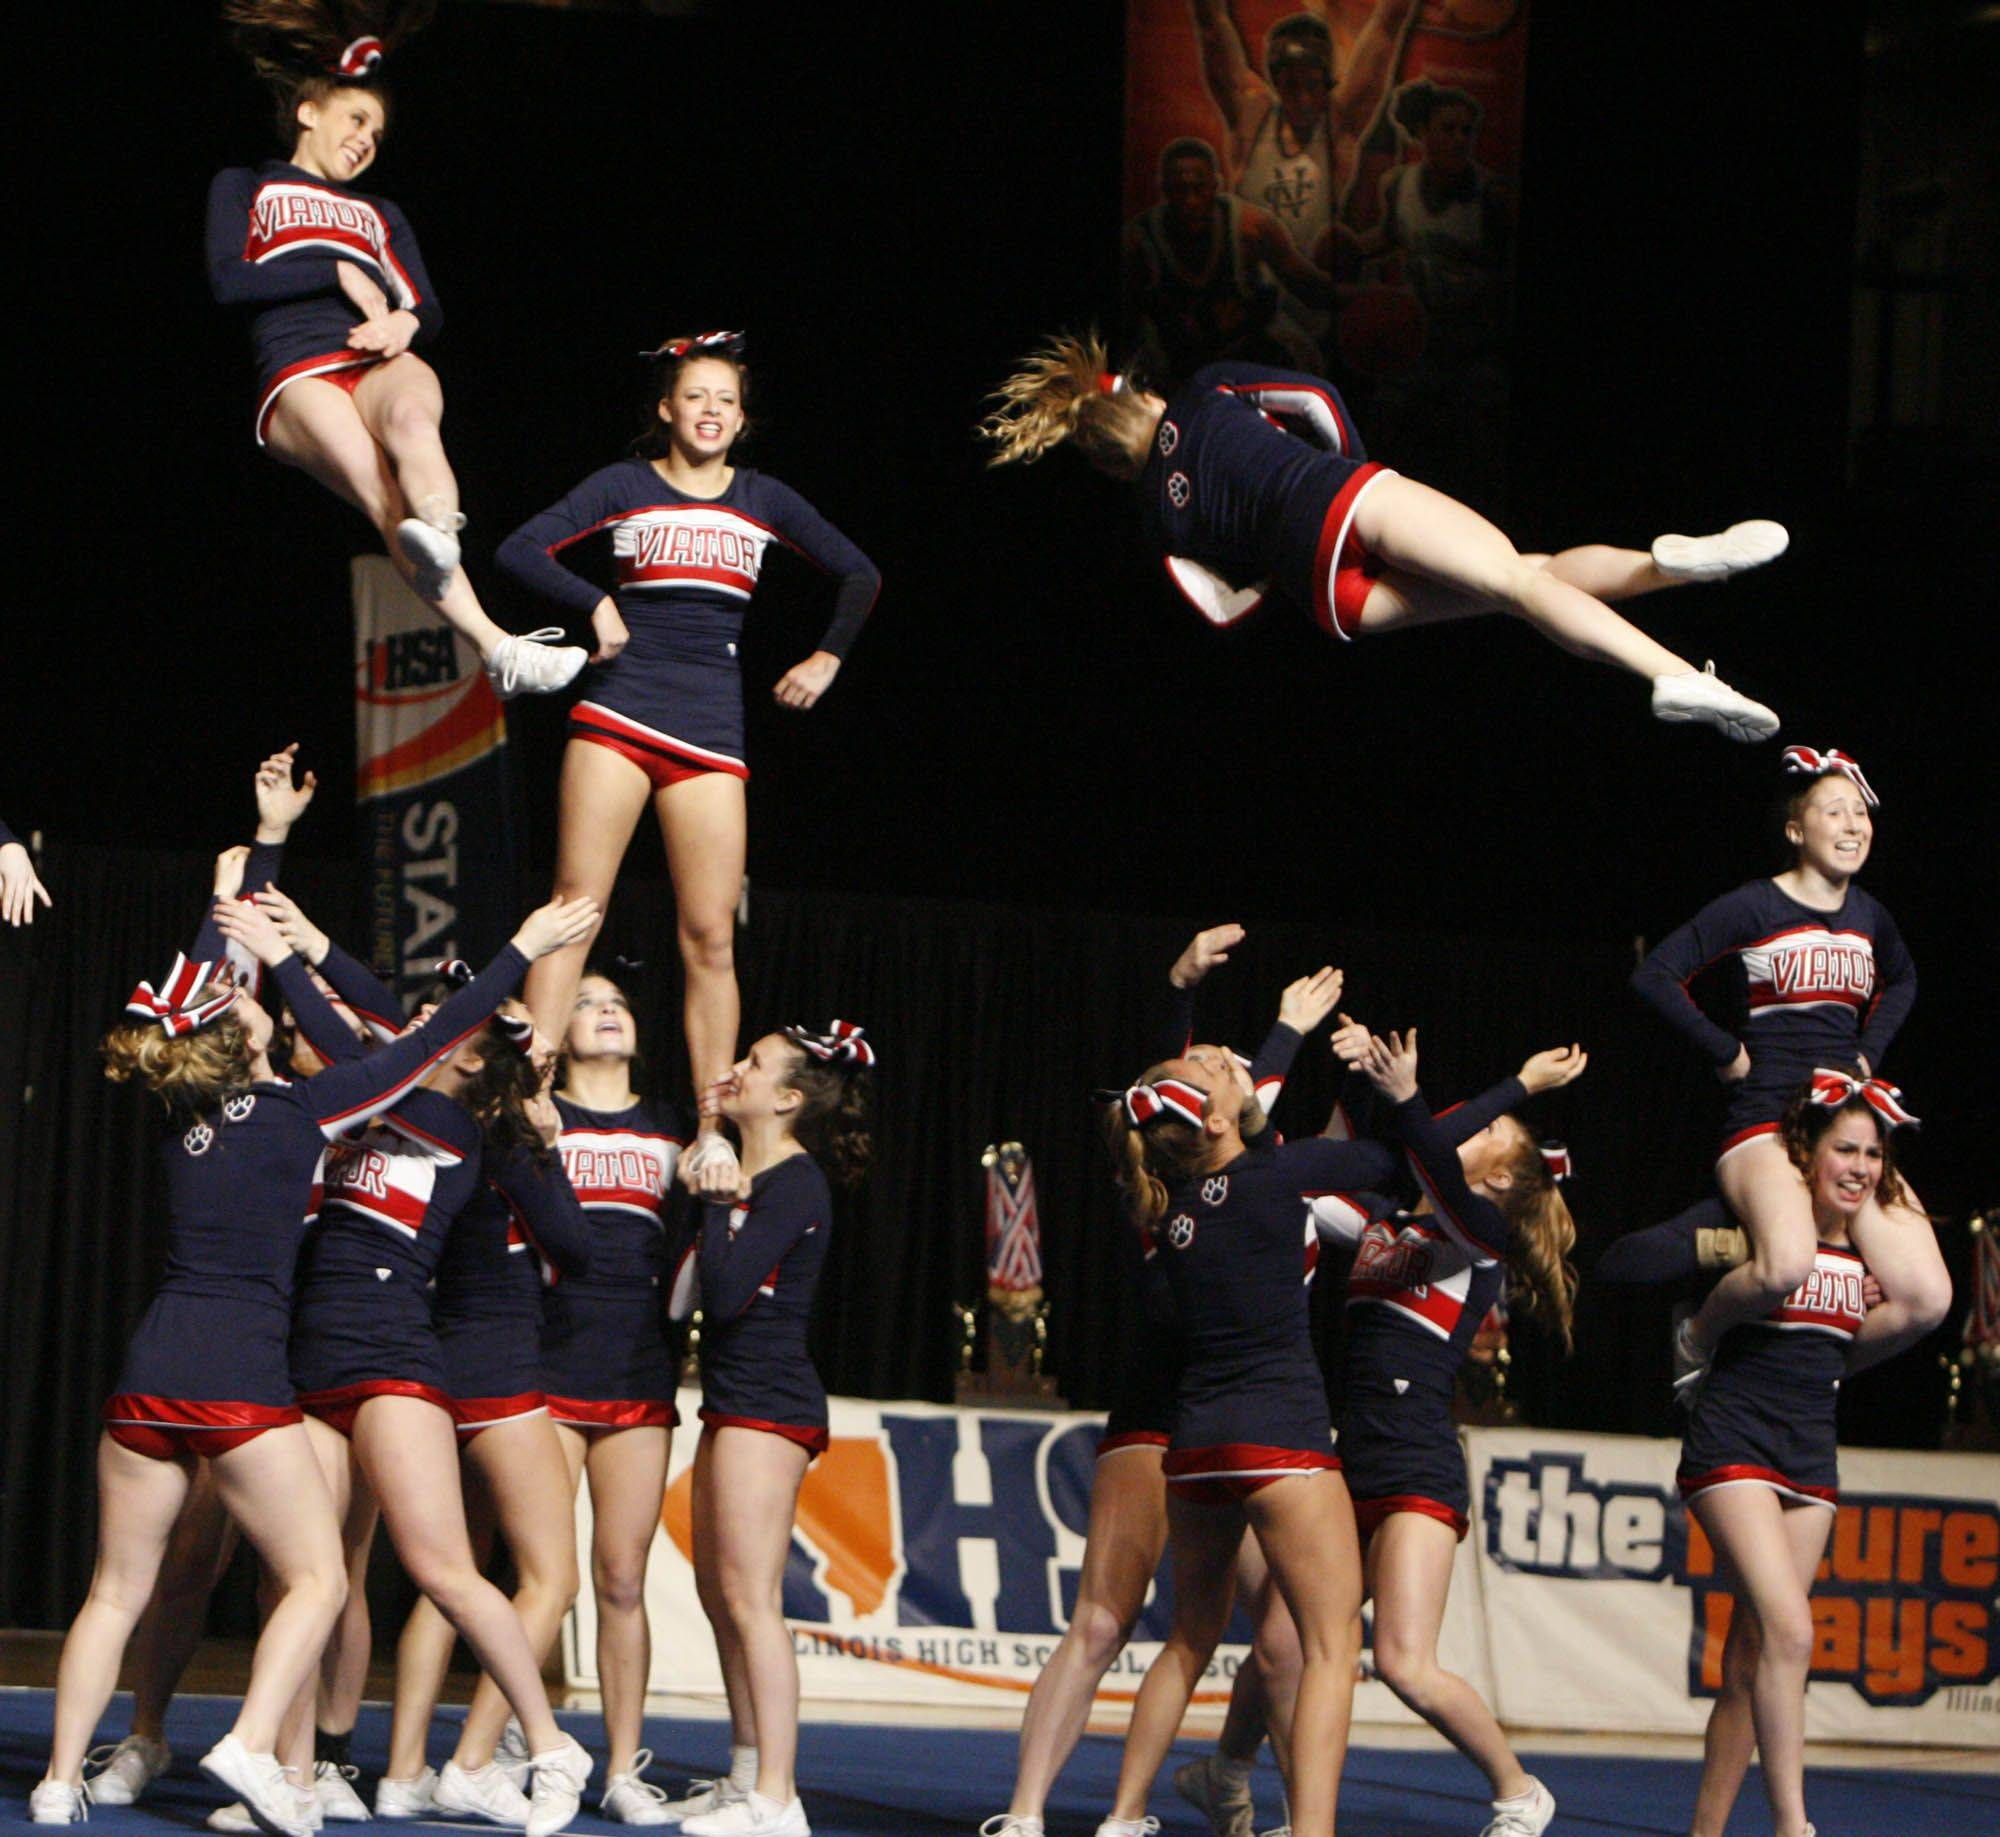 St. Viator competes in the medium team category at IHSA cheerleading state finals at U.S. Cellular Coliseum in Bloomington on Saturday.